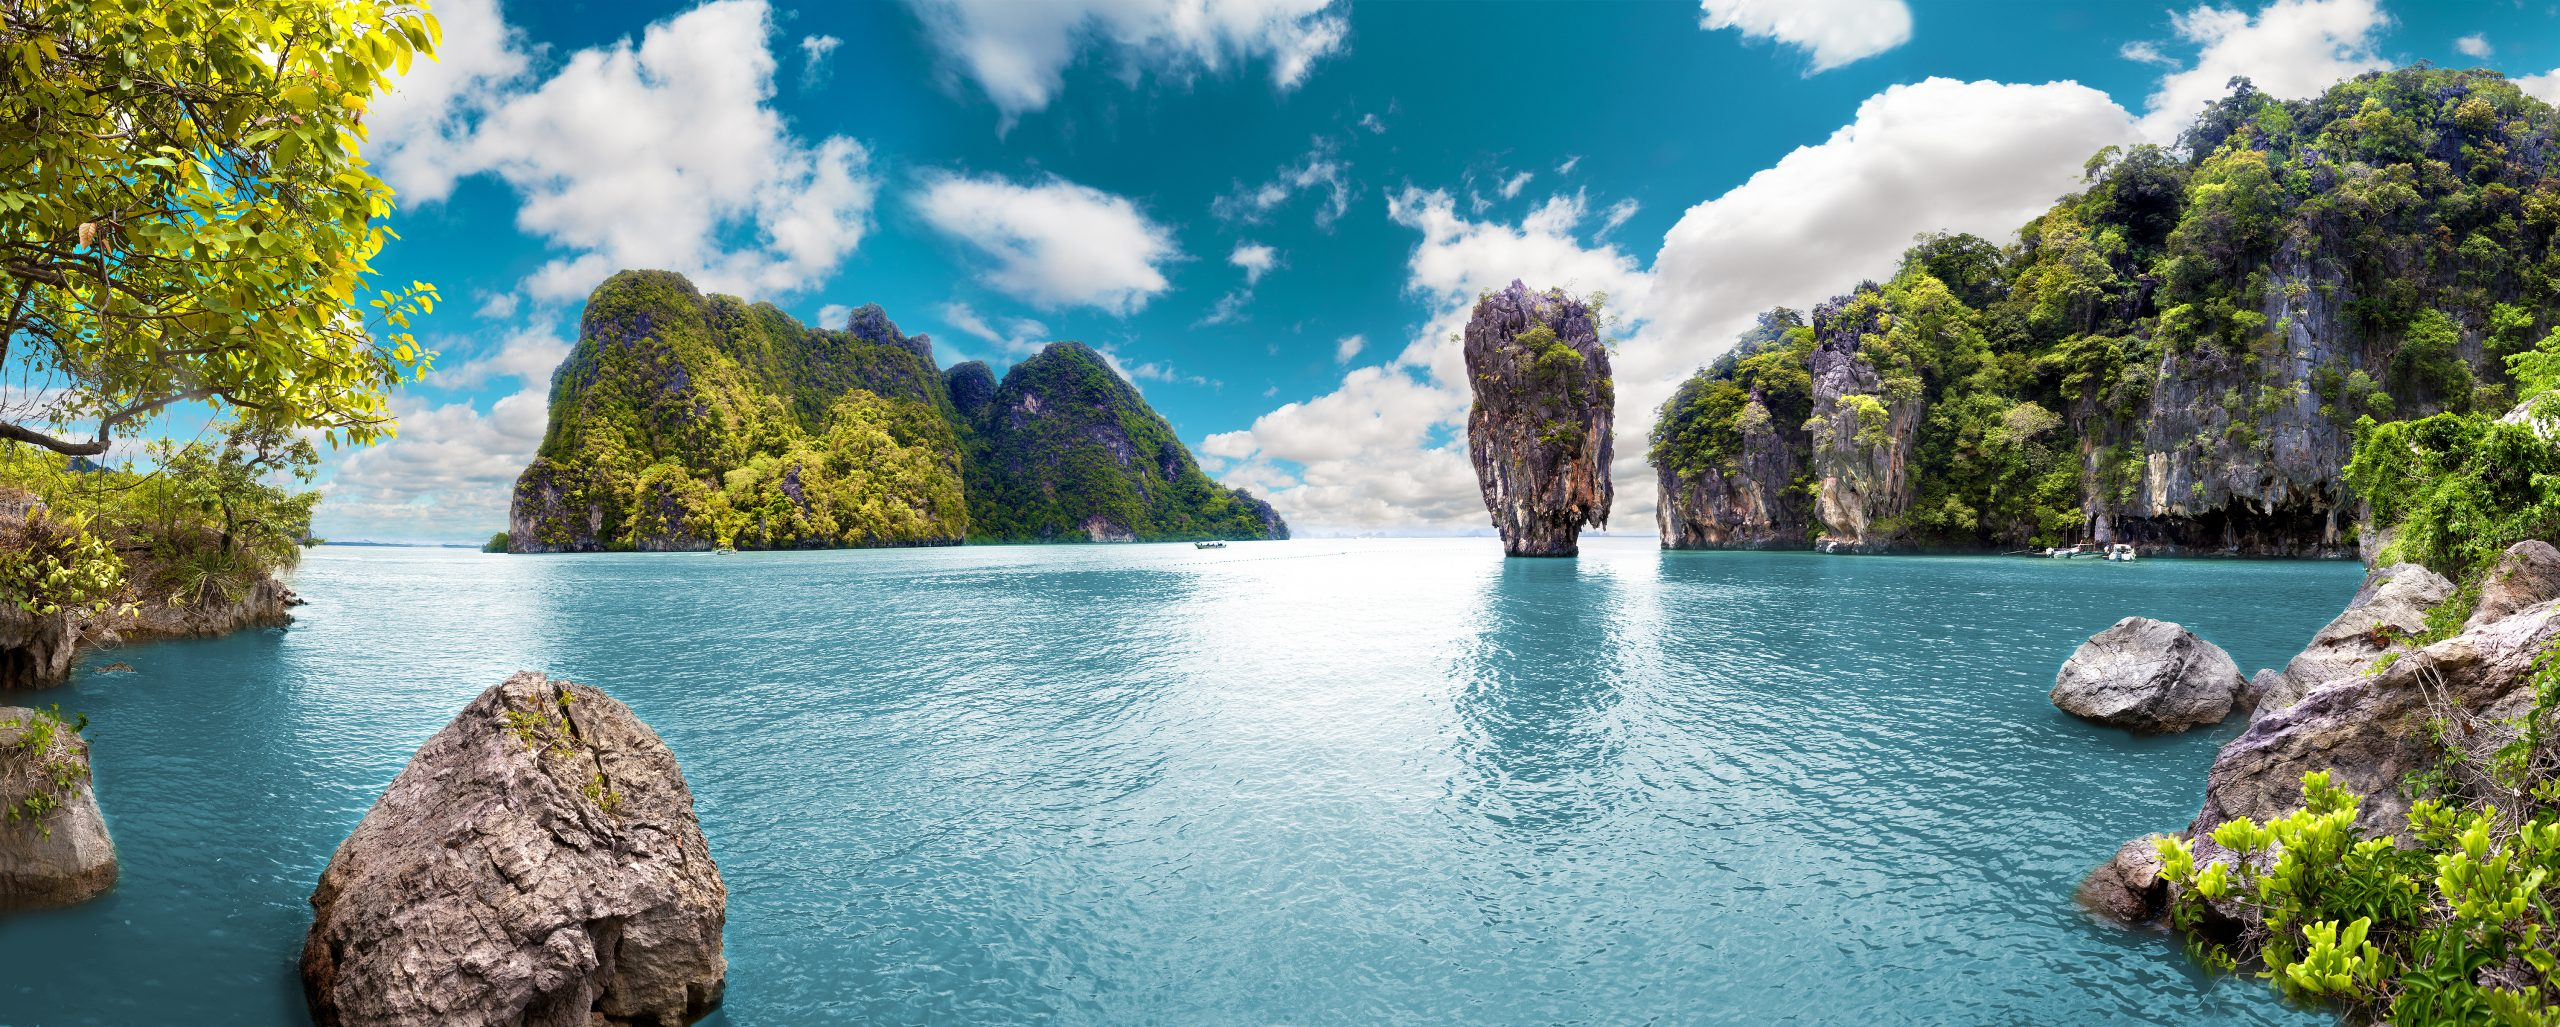 Thailand nature blue water